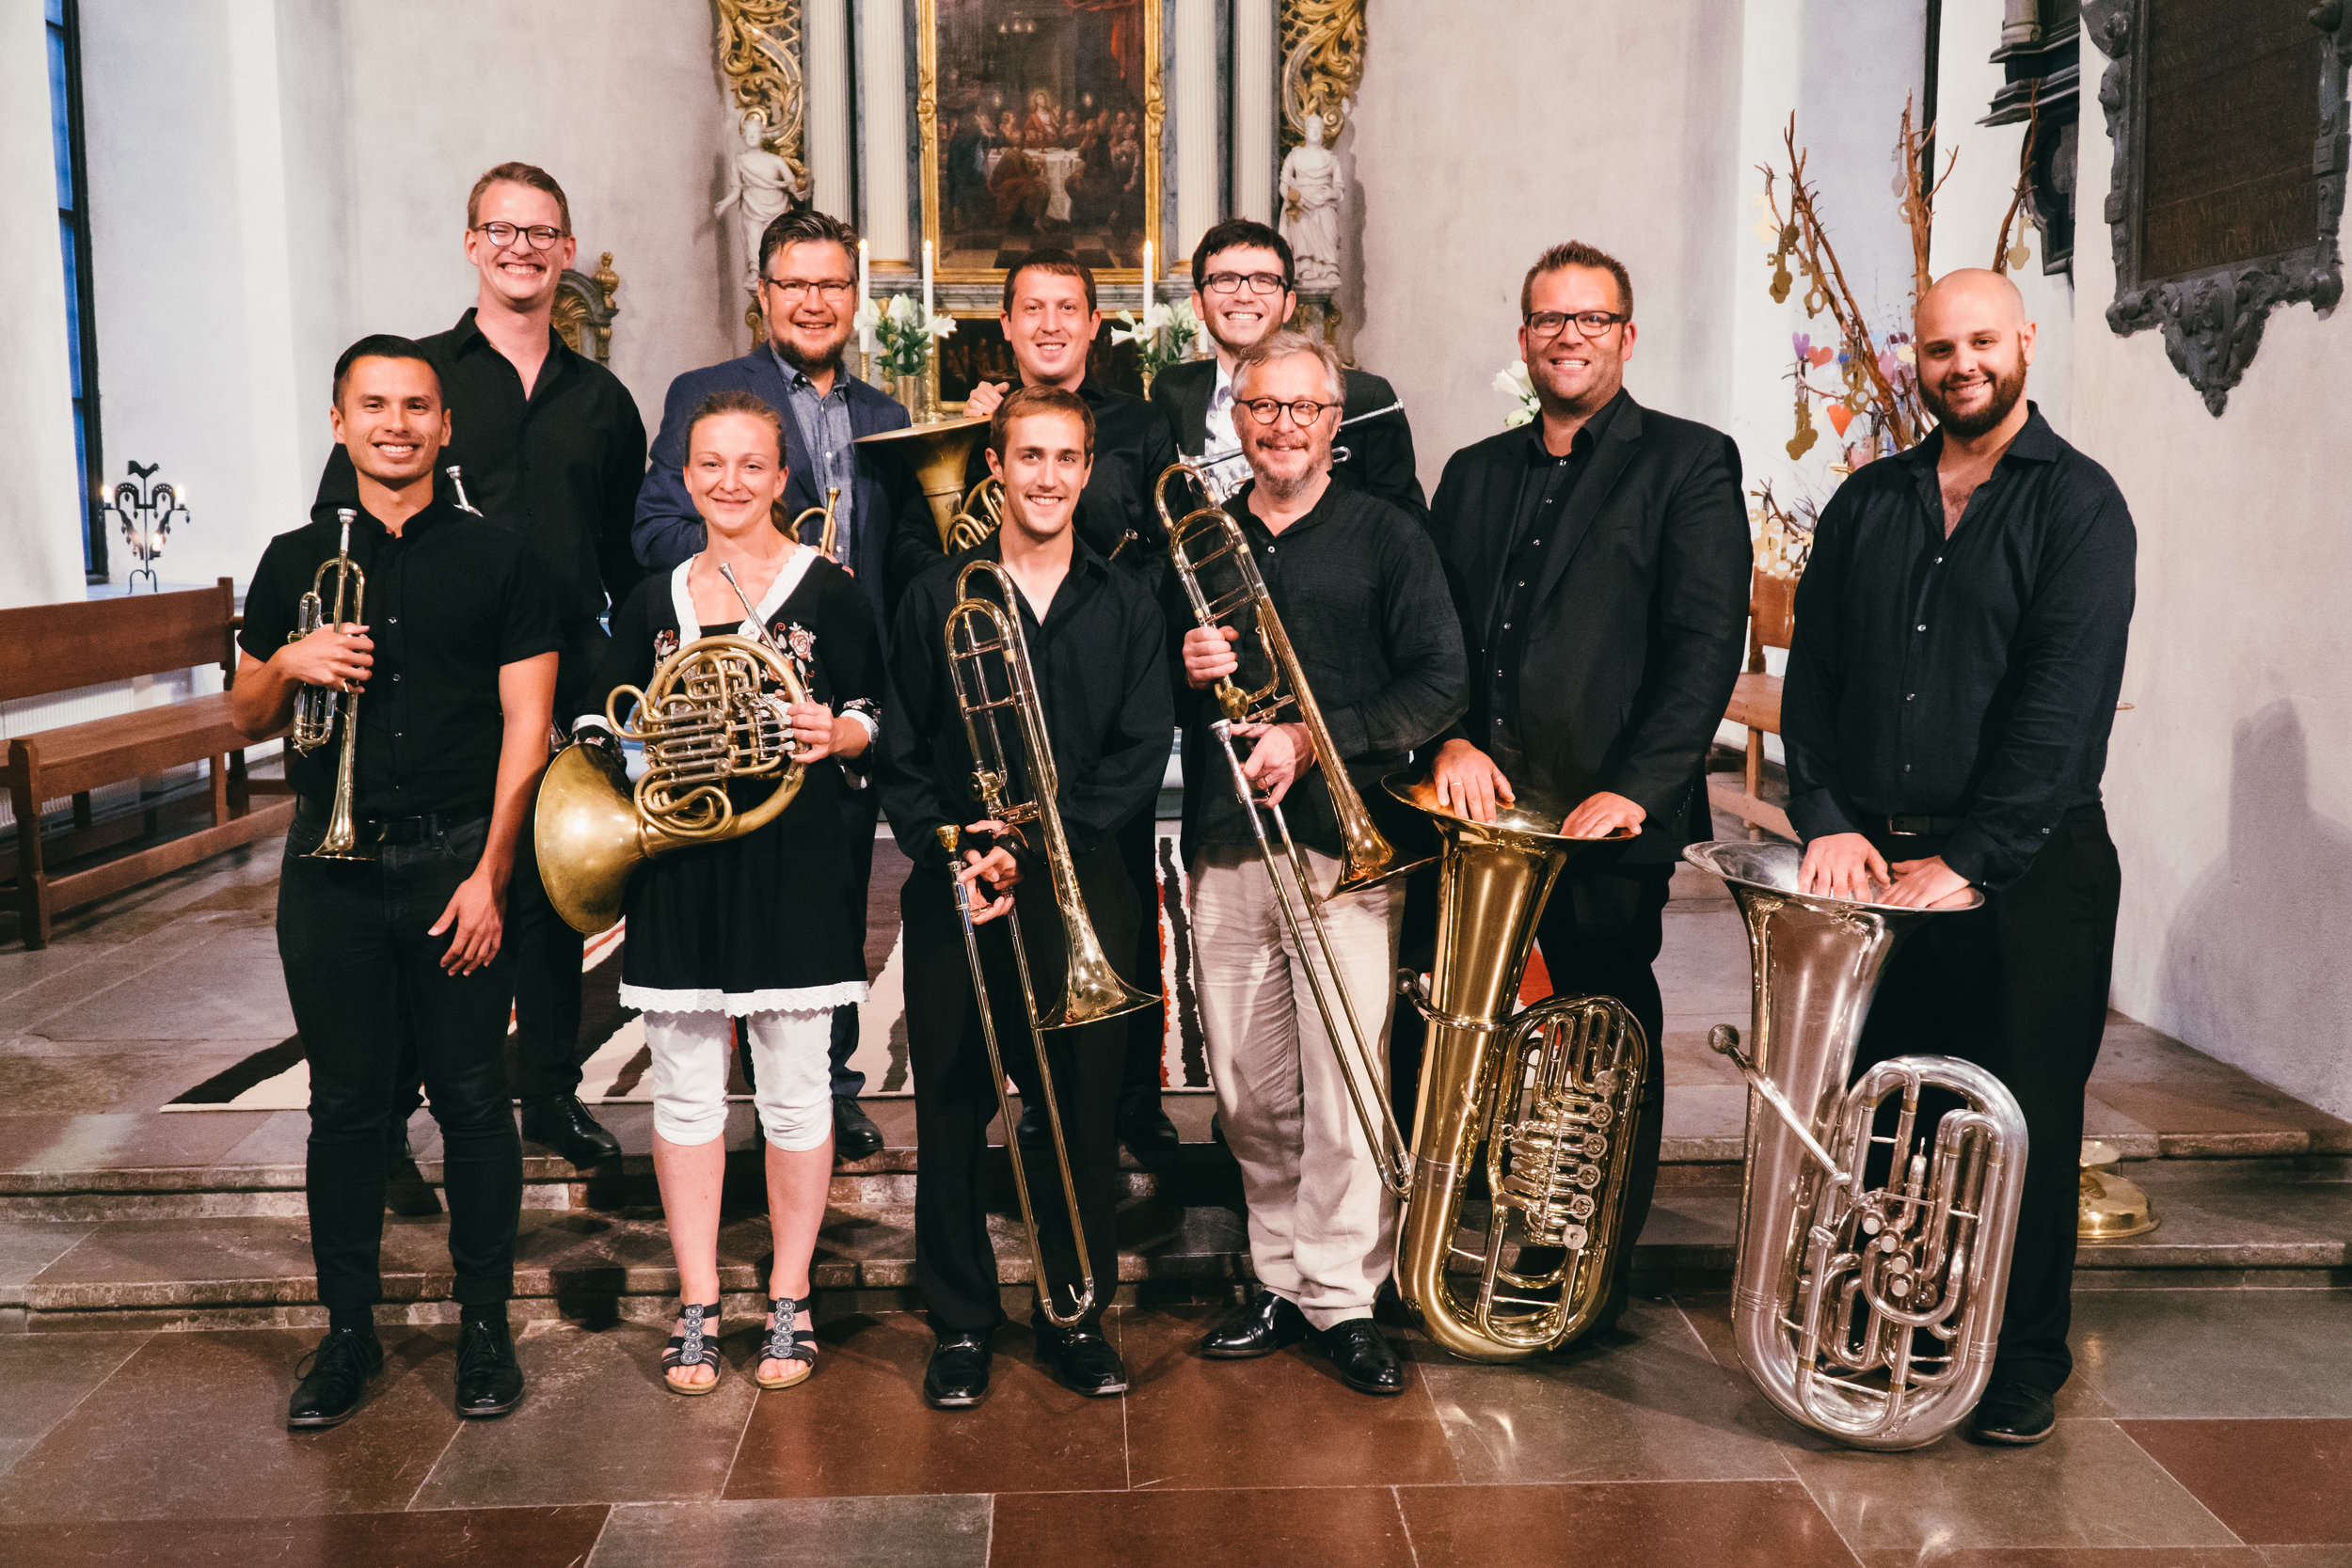 TBB @ Stockholm Chamber Brass Academy - July 27 - August 4, 2019